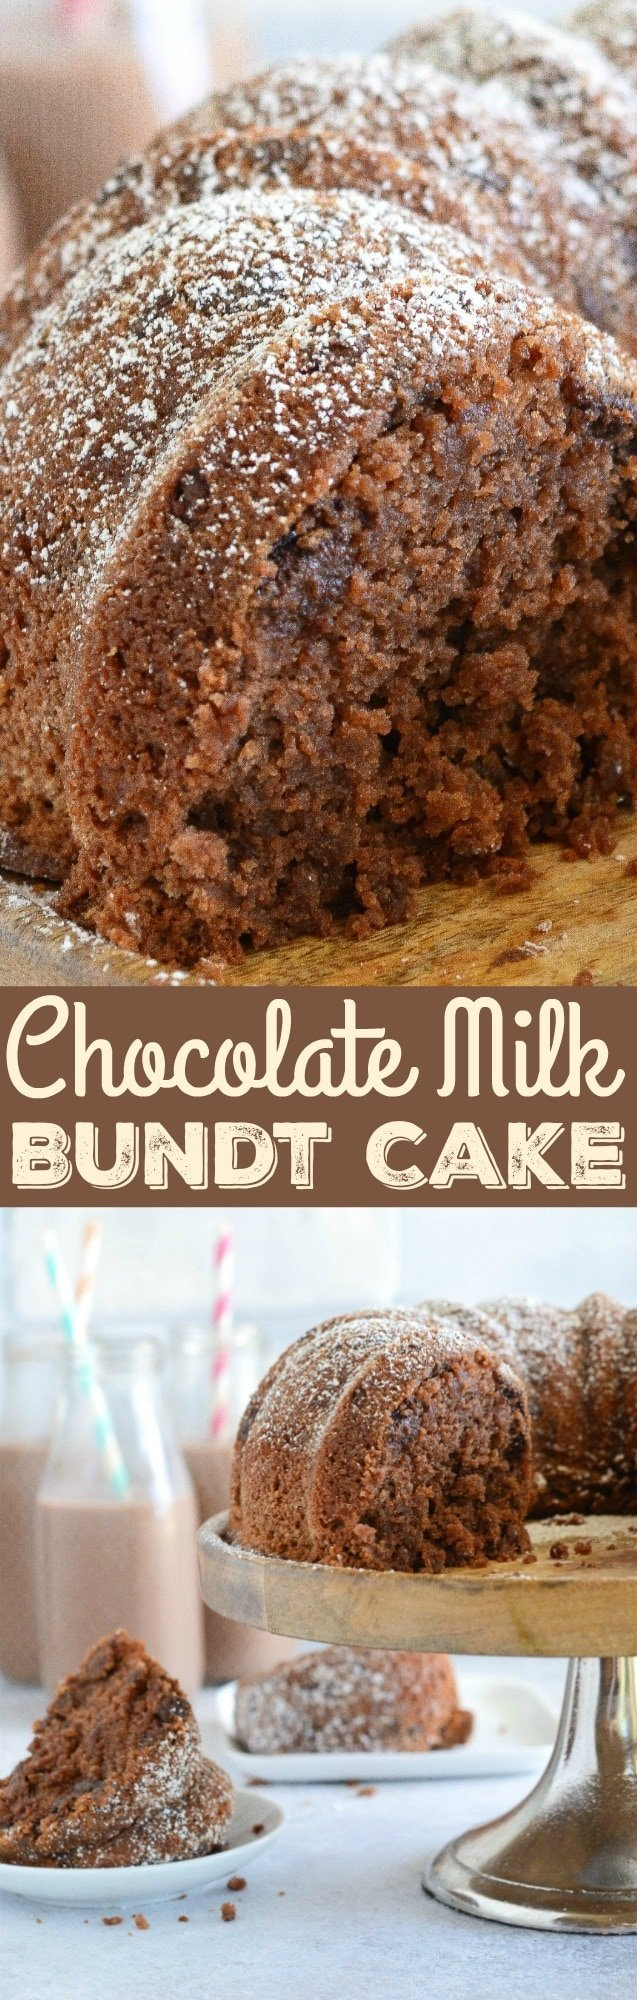 Chocolate Milk Bundt Cake: a sweet, moist homemade chocolate cake that is loaded with chocolate milk and chocolate chips to create the best bundt cake ever!